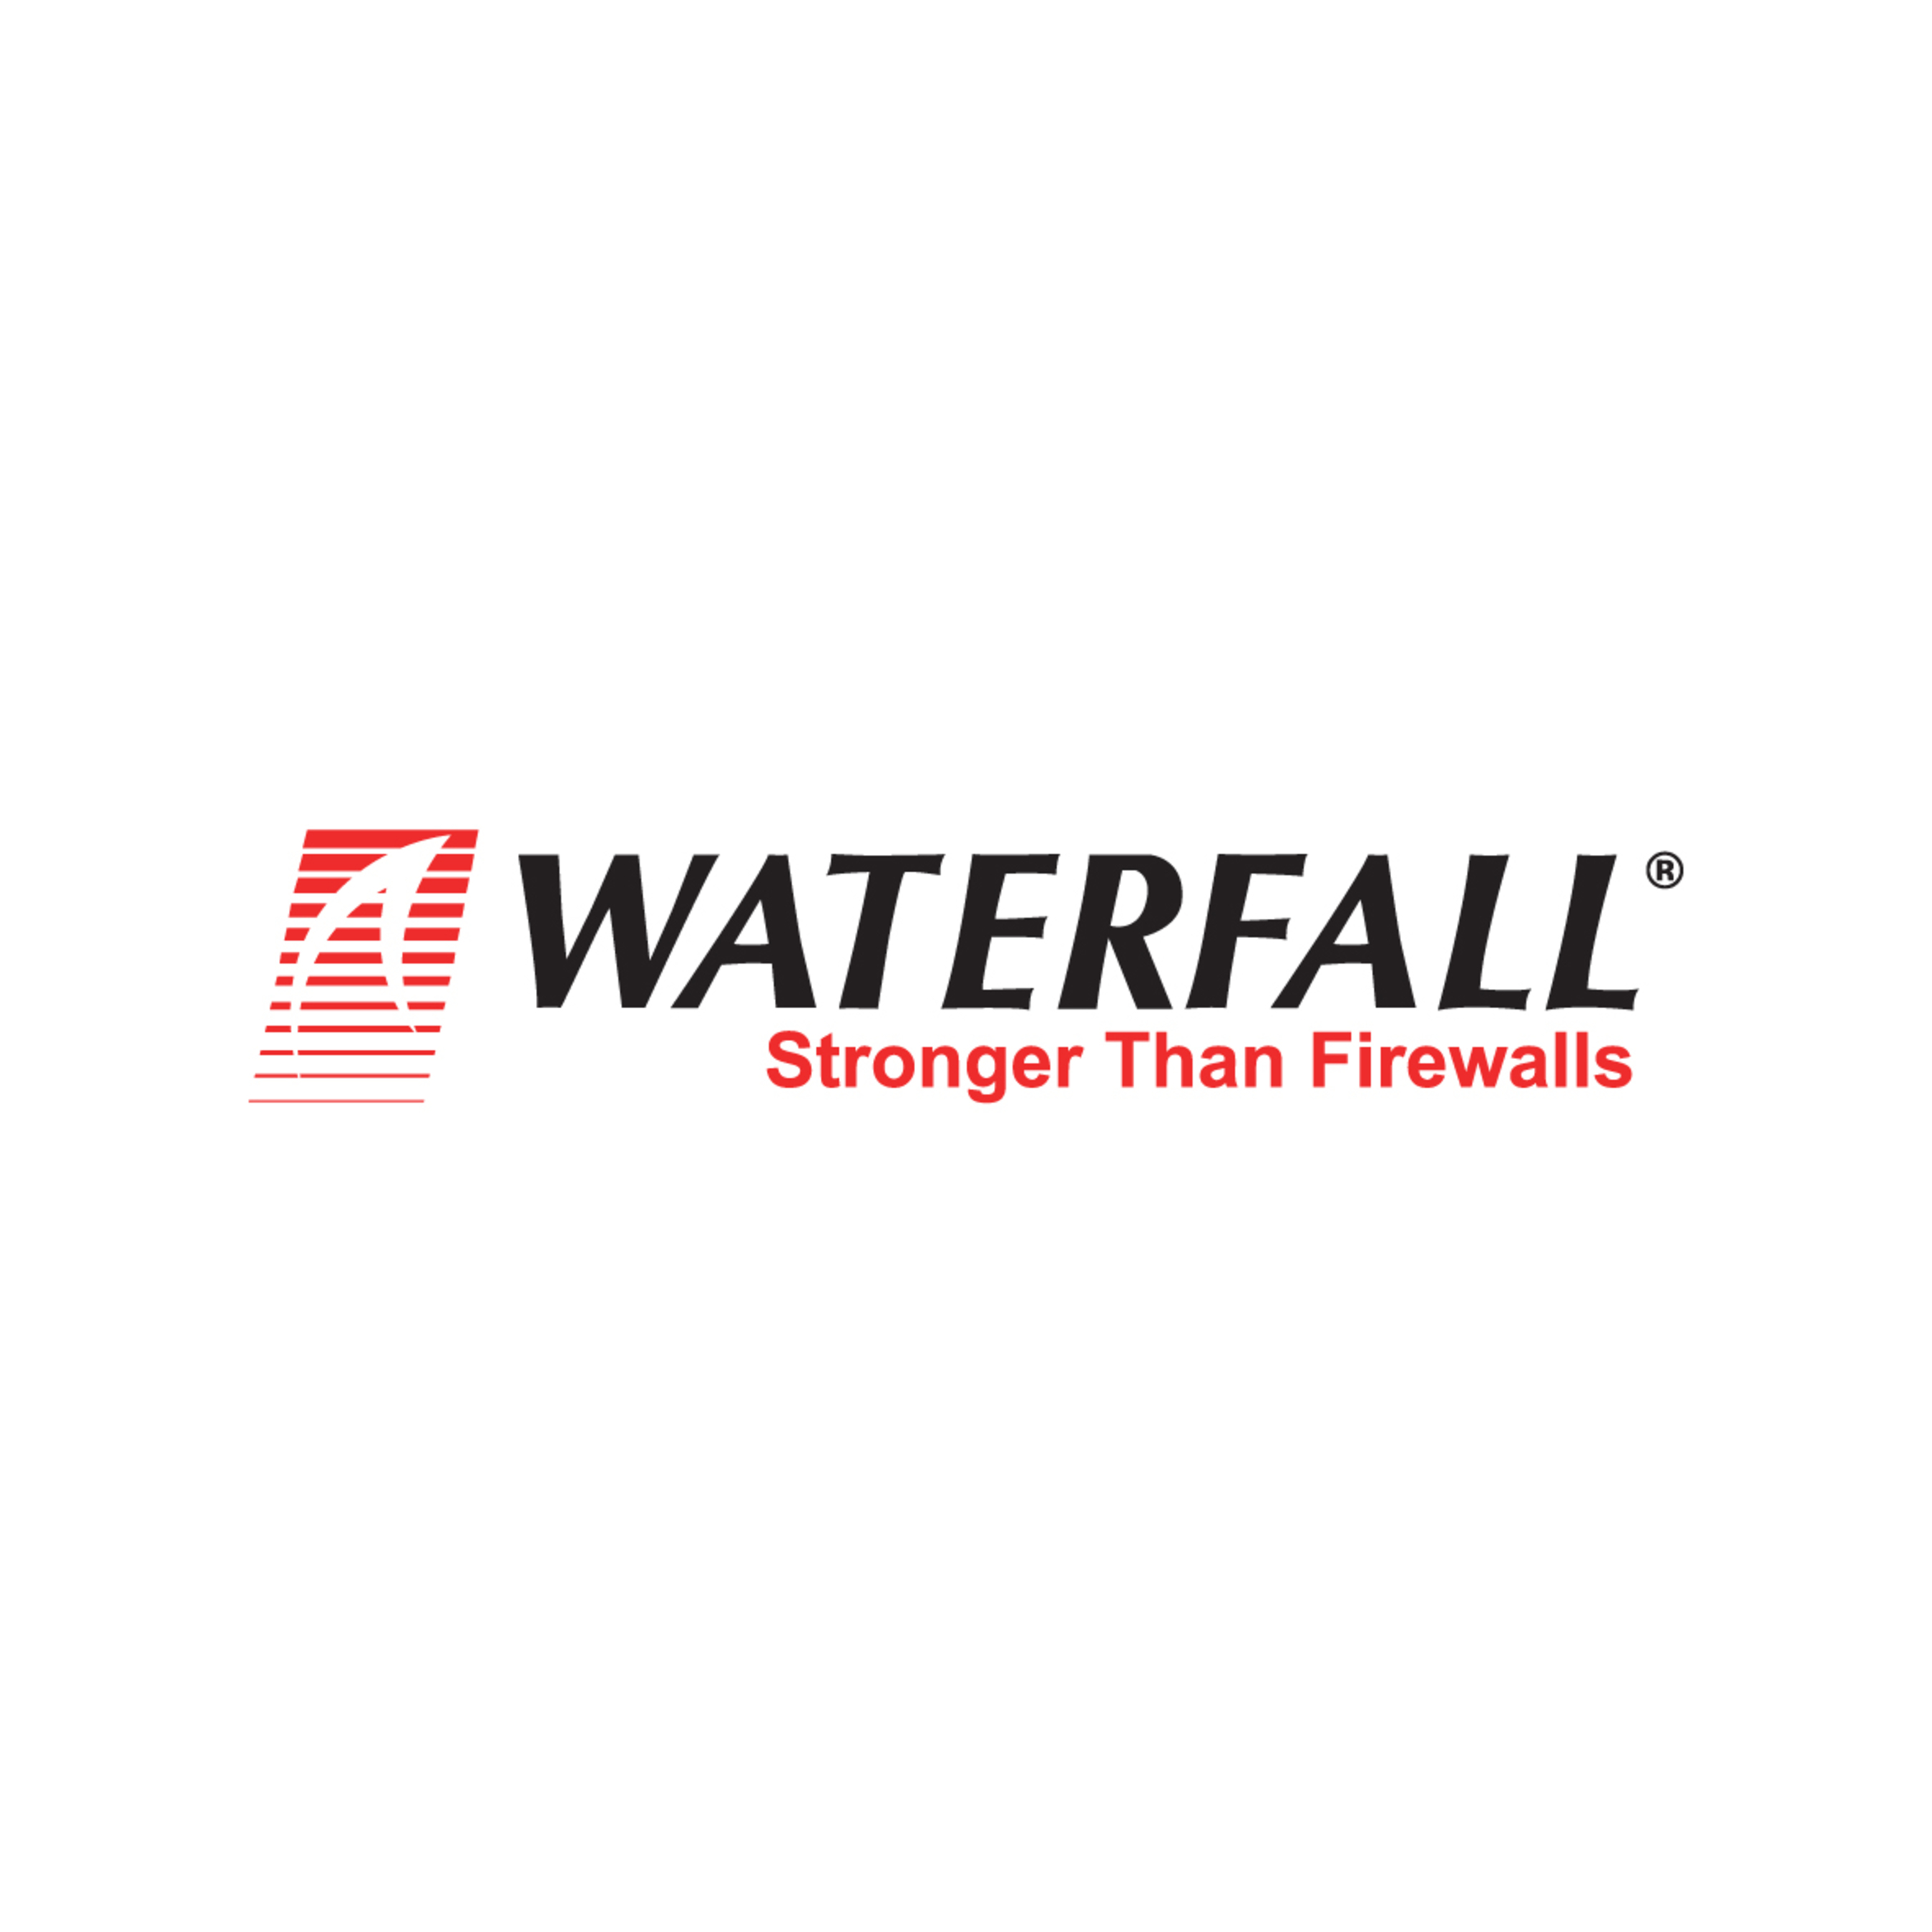 Waterfall Security and FireEye Partner to Secure Industrial